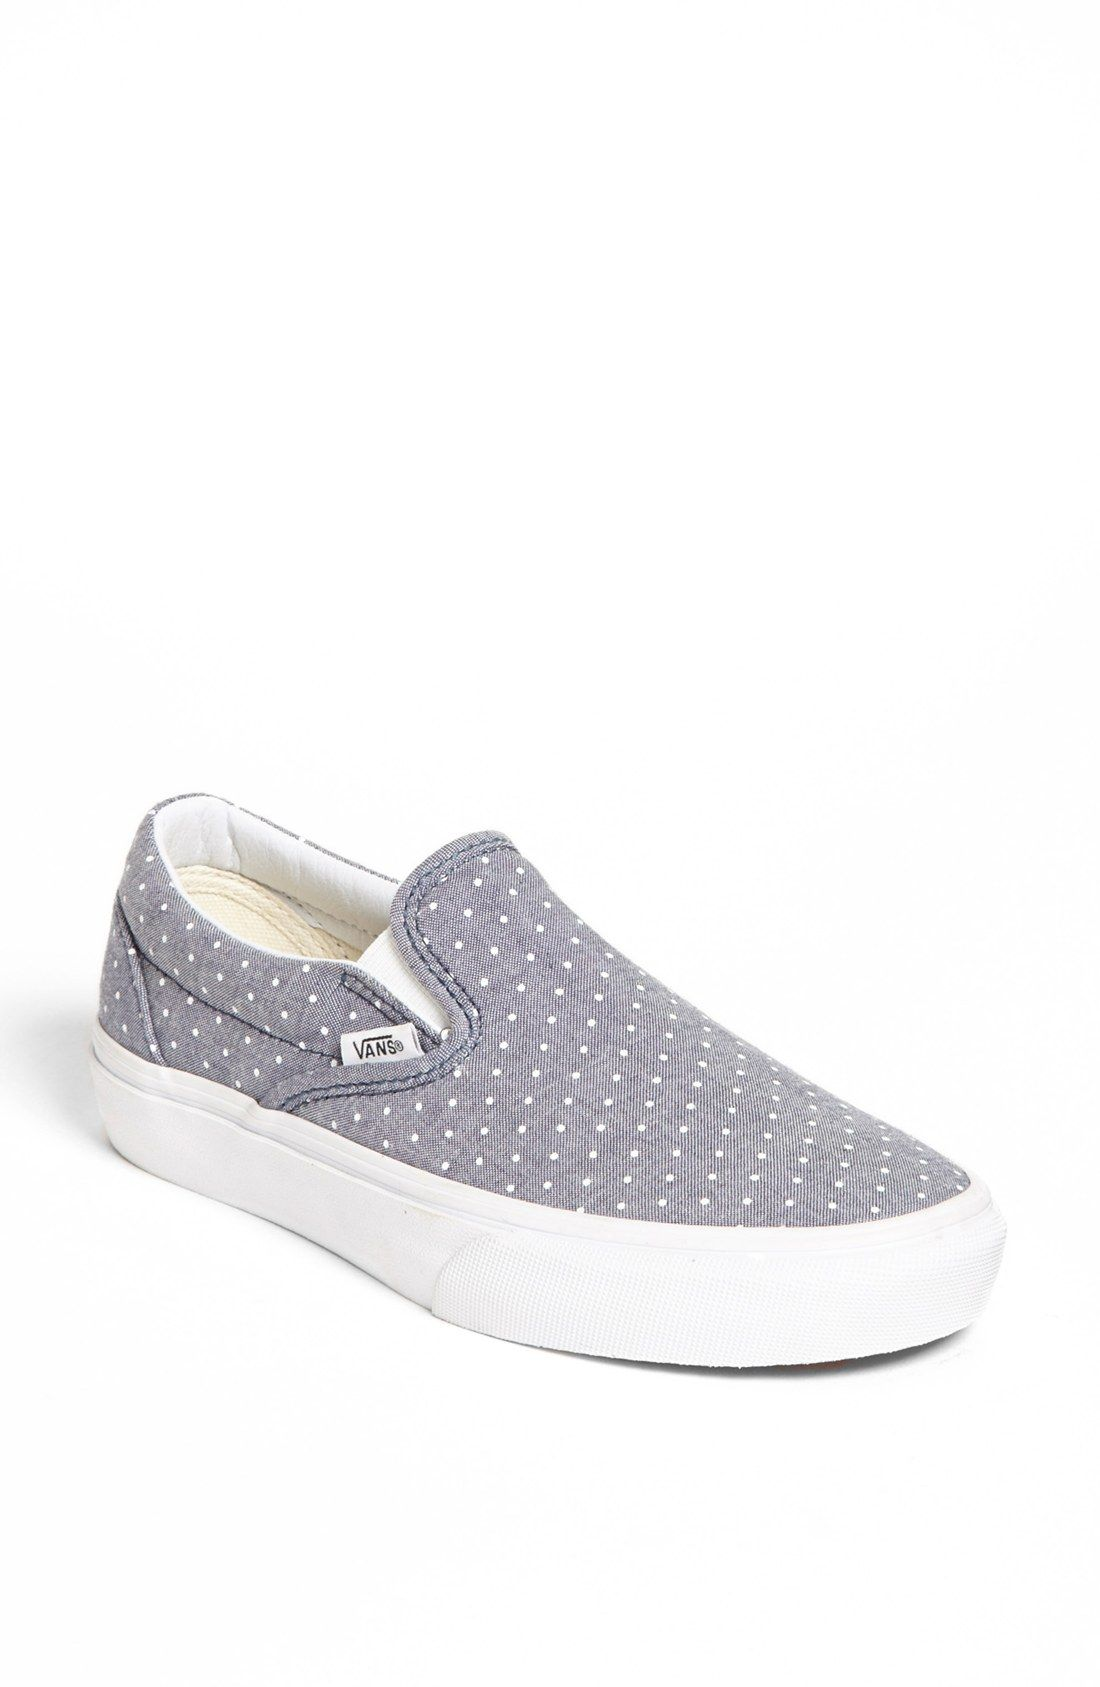 Polka dot Vans. These are everything. | Shoe Obsessed in